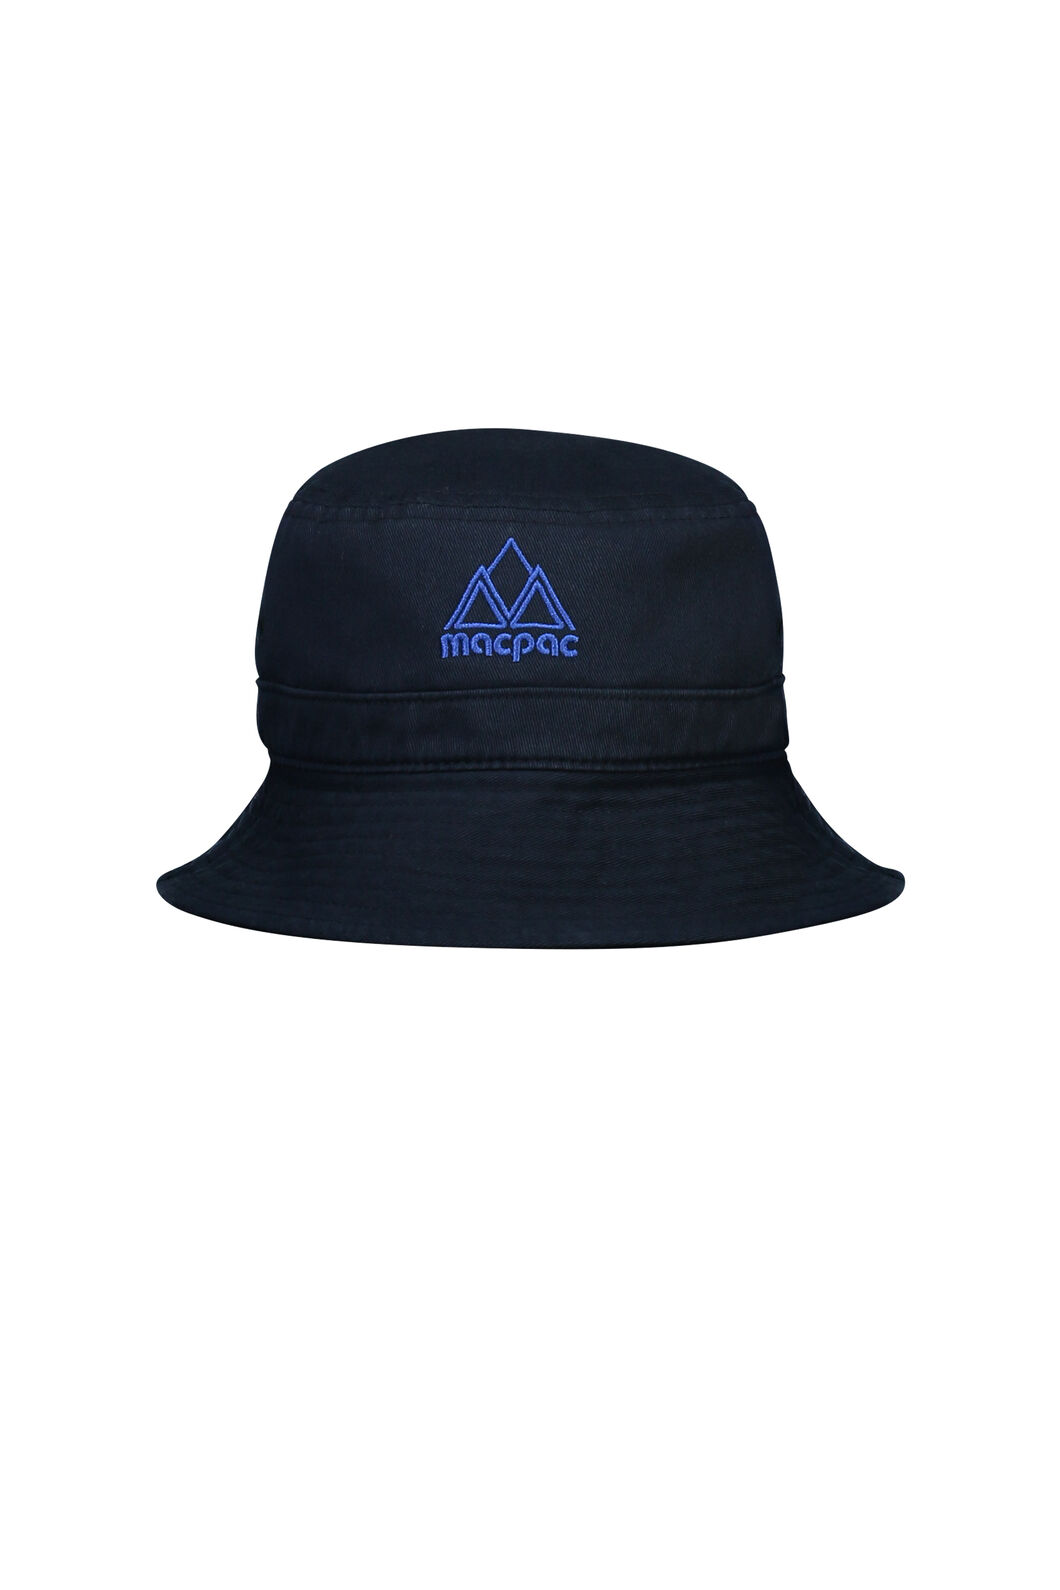 Macpac Bucket Hat - Kids', Carbon, hi-res